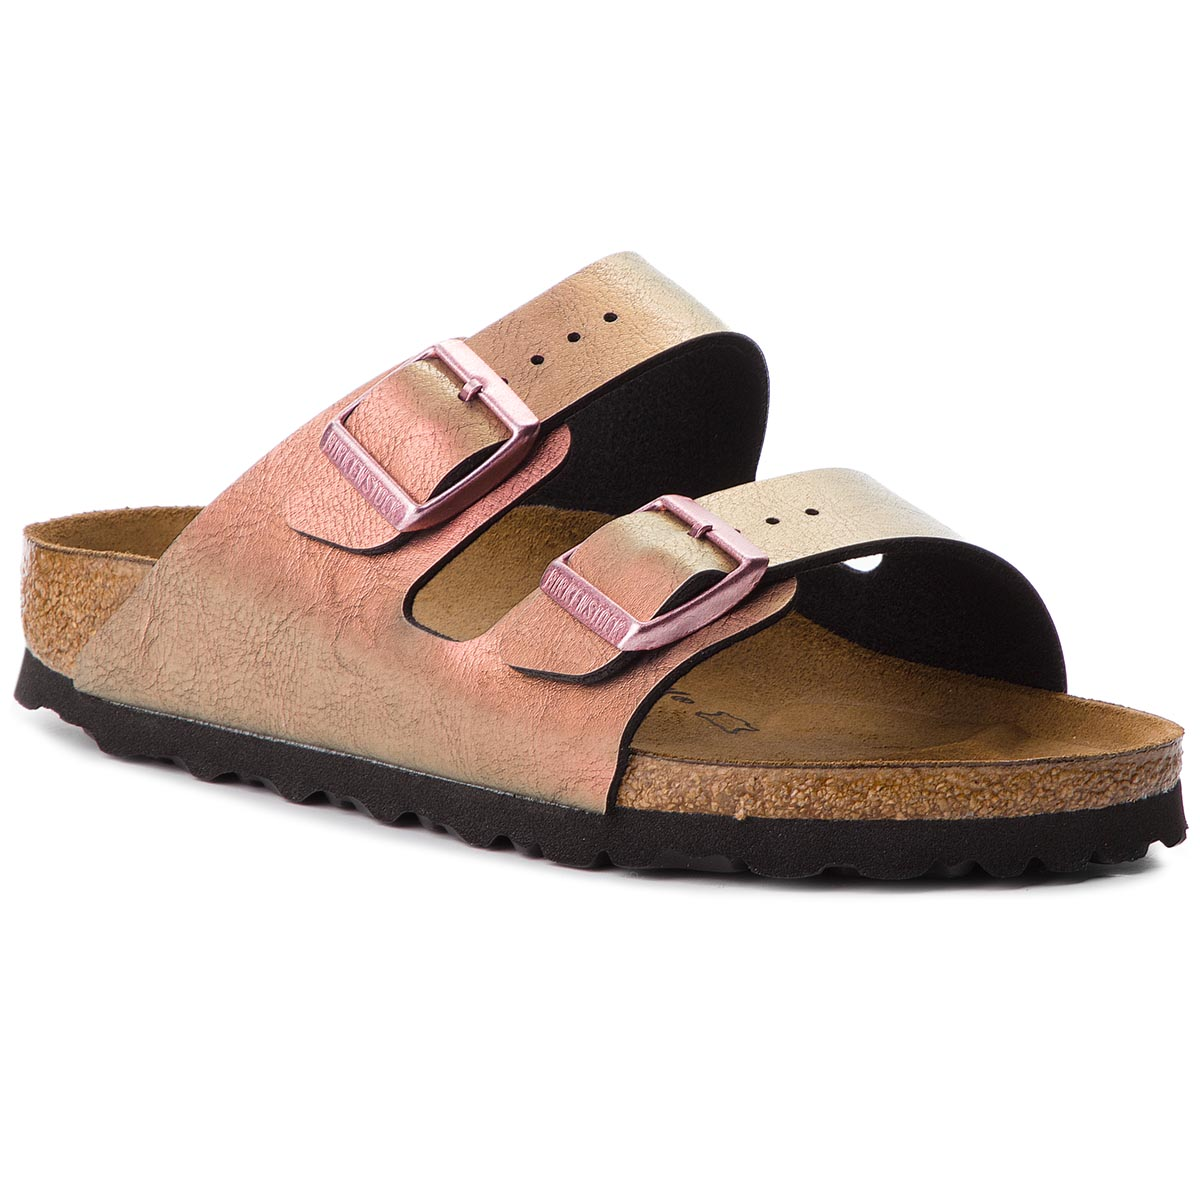 Klapki BIRKENSTOCK - Arizona Bs 1012397 Graceful Gemm Red